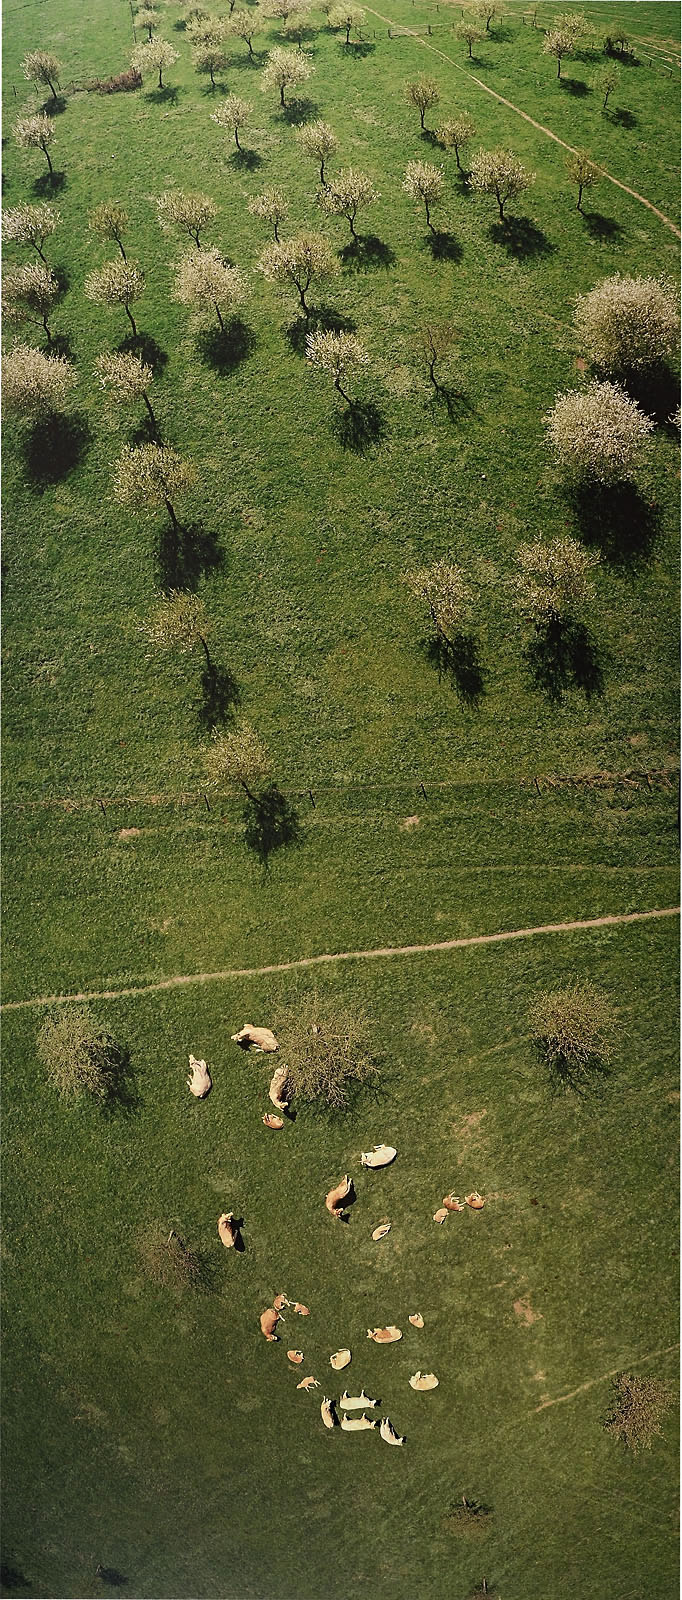 The green pastures seen from a kite by Gerco de Ruijter